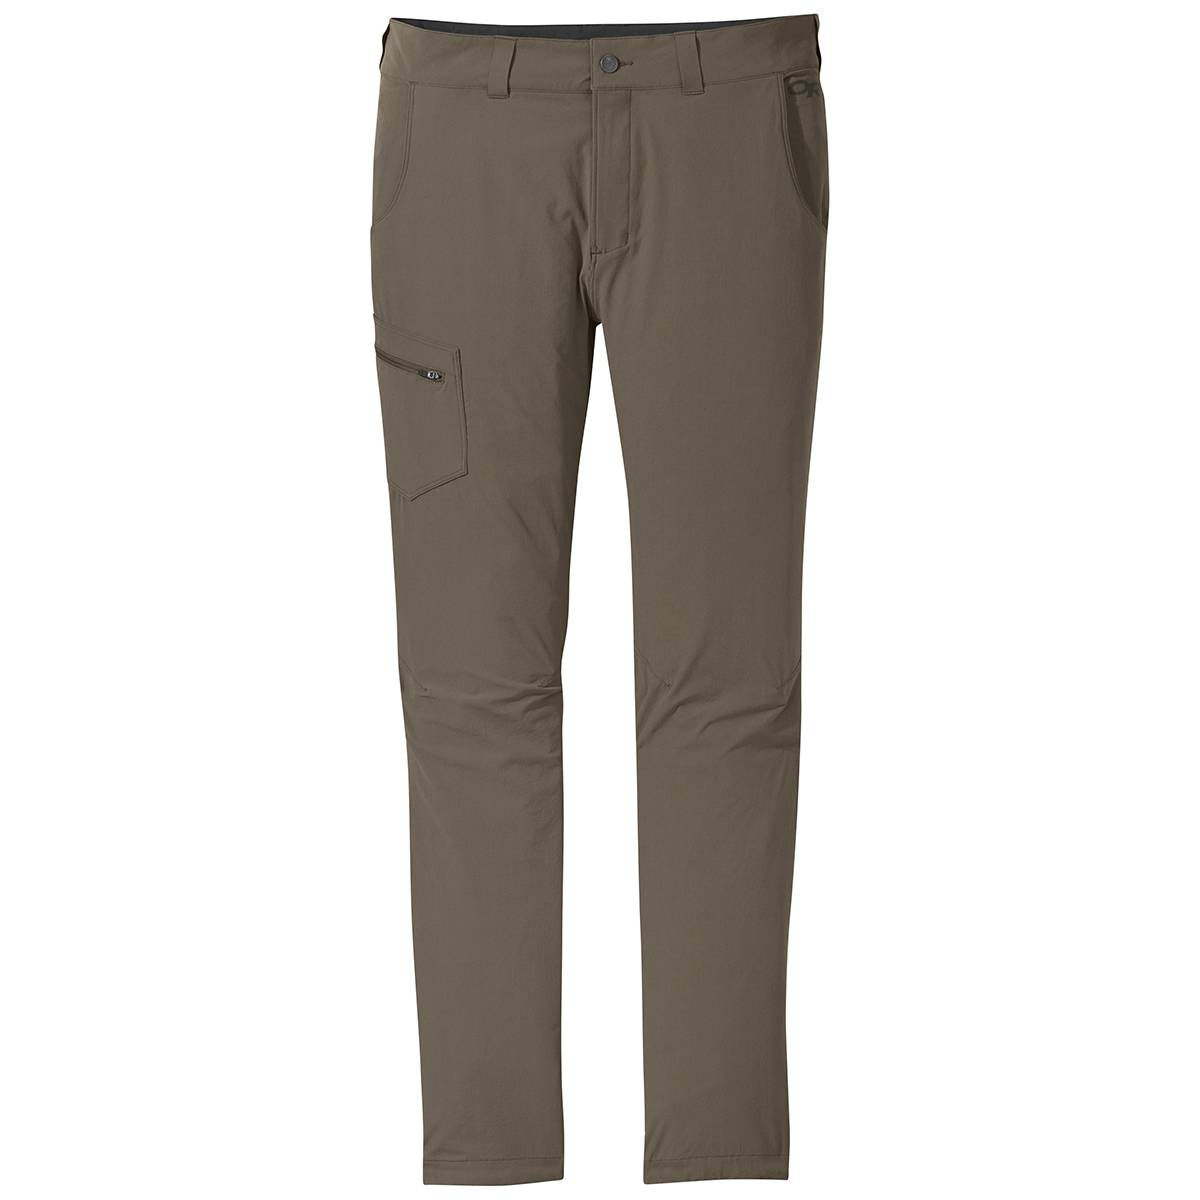 Outdoor Research Men's Ferrosi Pant - Size 34/32